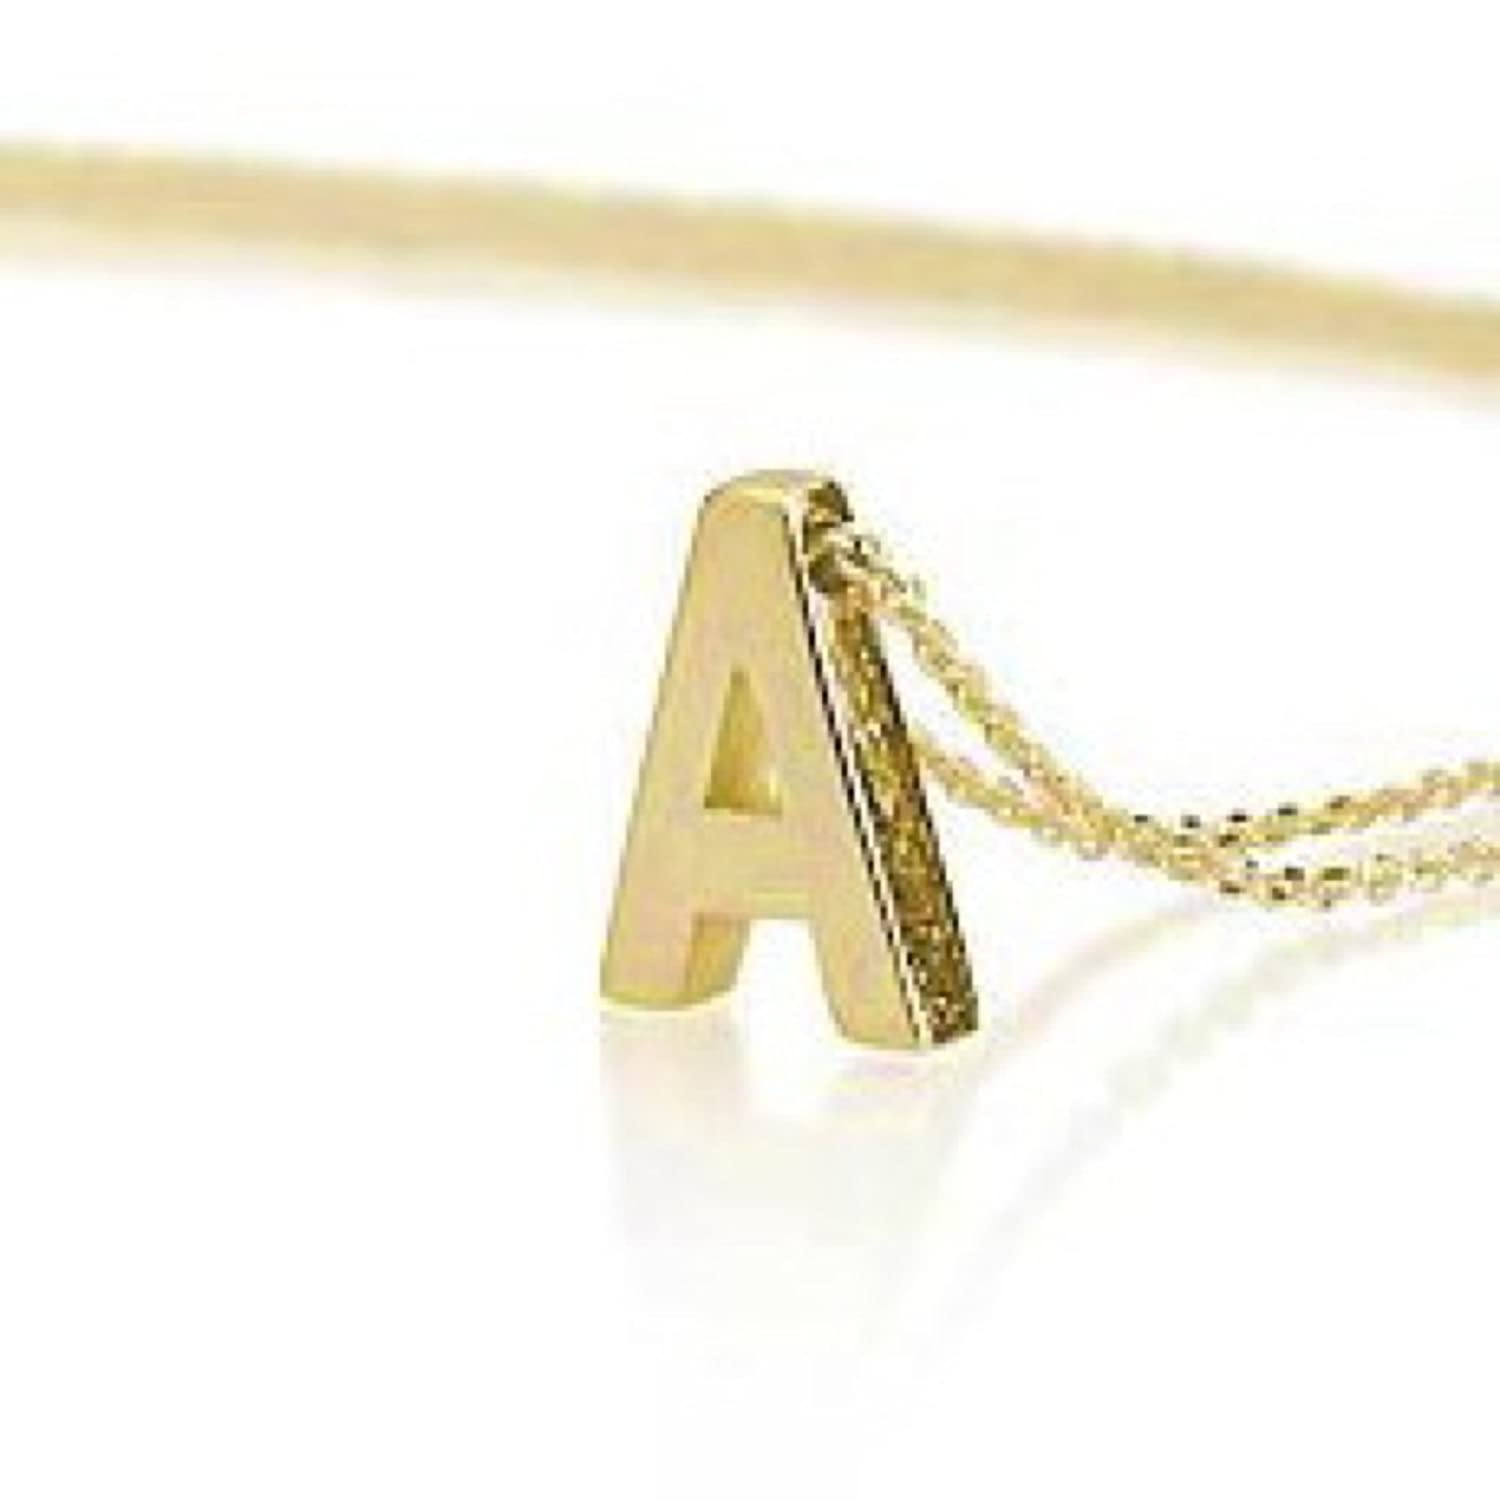 Amazon initial necklace 18k gold plated personalized initial amazon initial necklace 18k gold plated personalized initial necklace letter necklace choose any initial 14 inches pendant necklaces jewelry mozeypictures Images